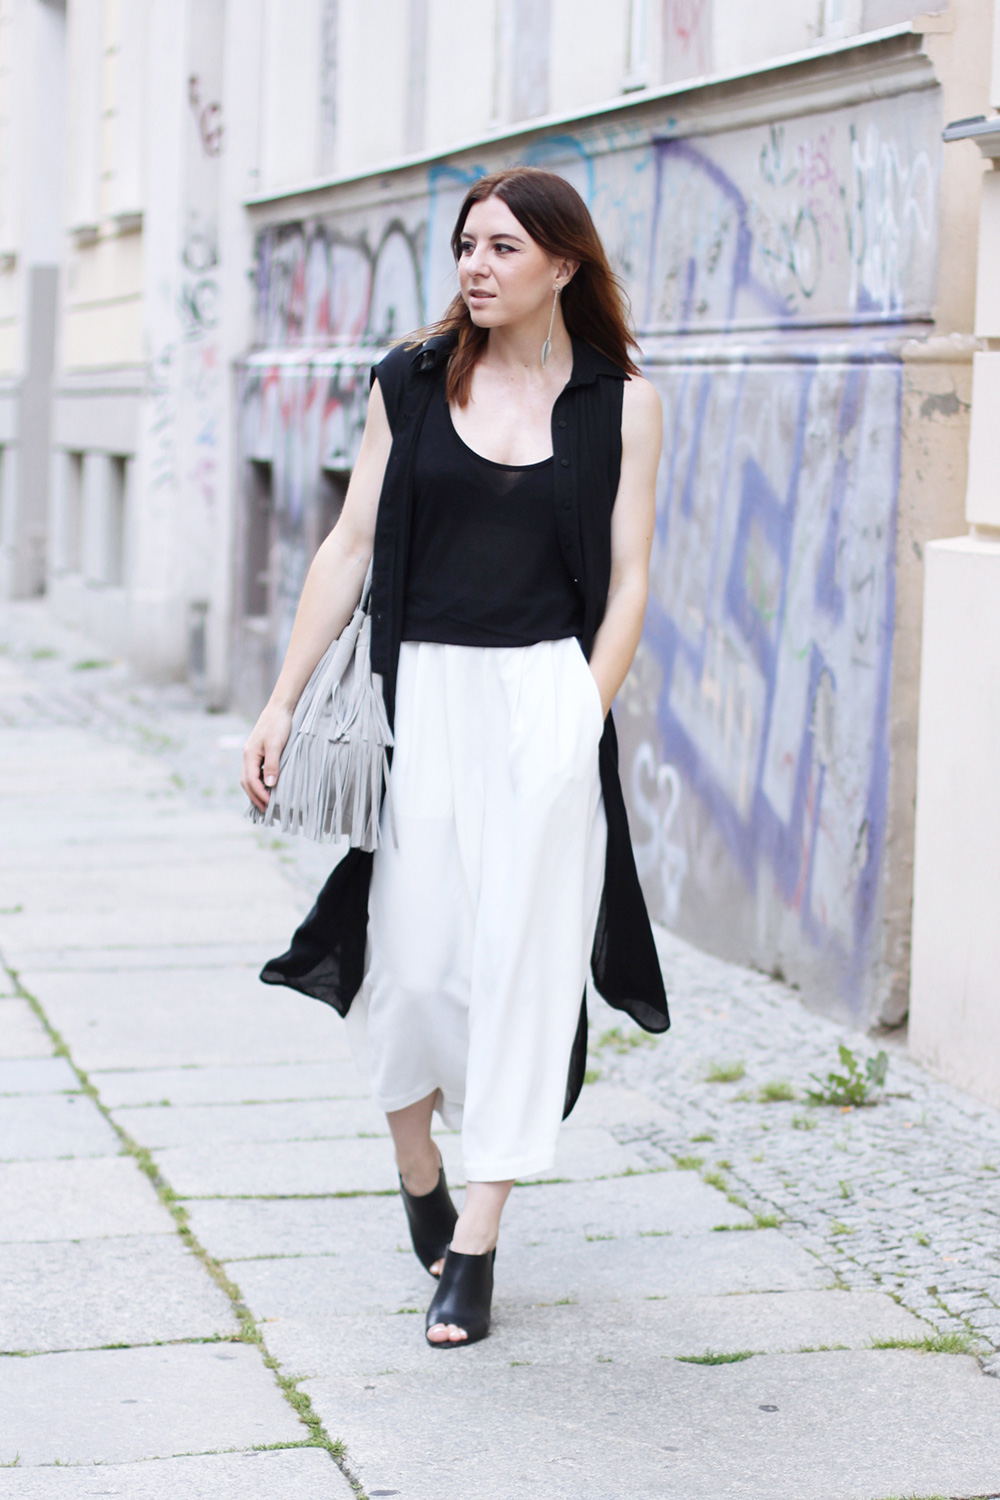 modeblog, who is mocca, blogger, tirol, austrianblogger, street style, berlin fashion week, lookbook, innsbruck street style, modeblogger, weiße culotte french connection, bucket bag zara fringe, pantoletten aldo, whoismocca.com